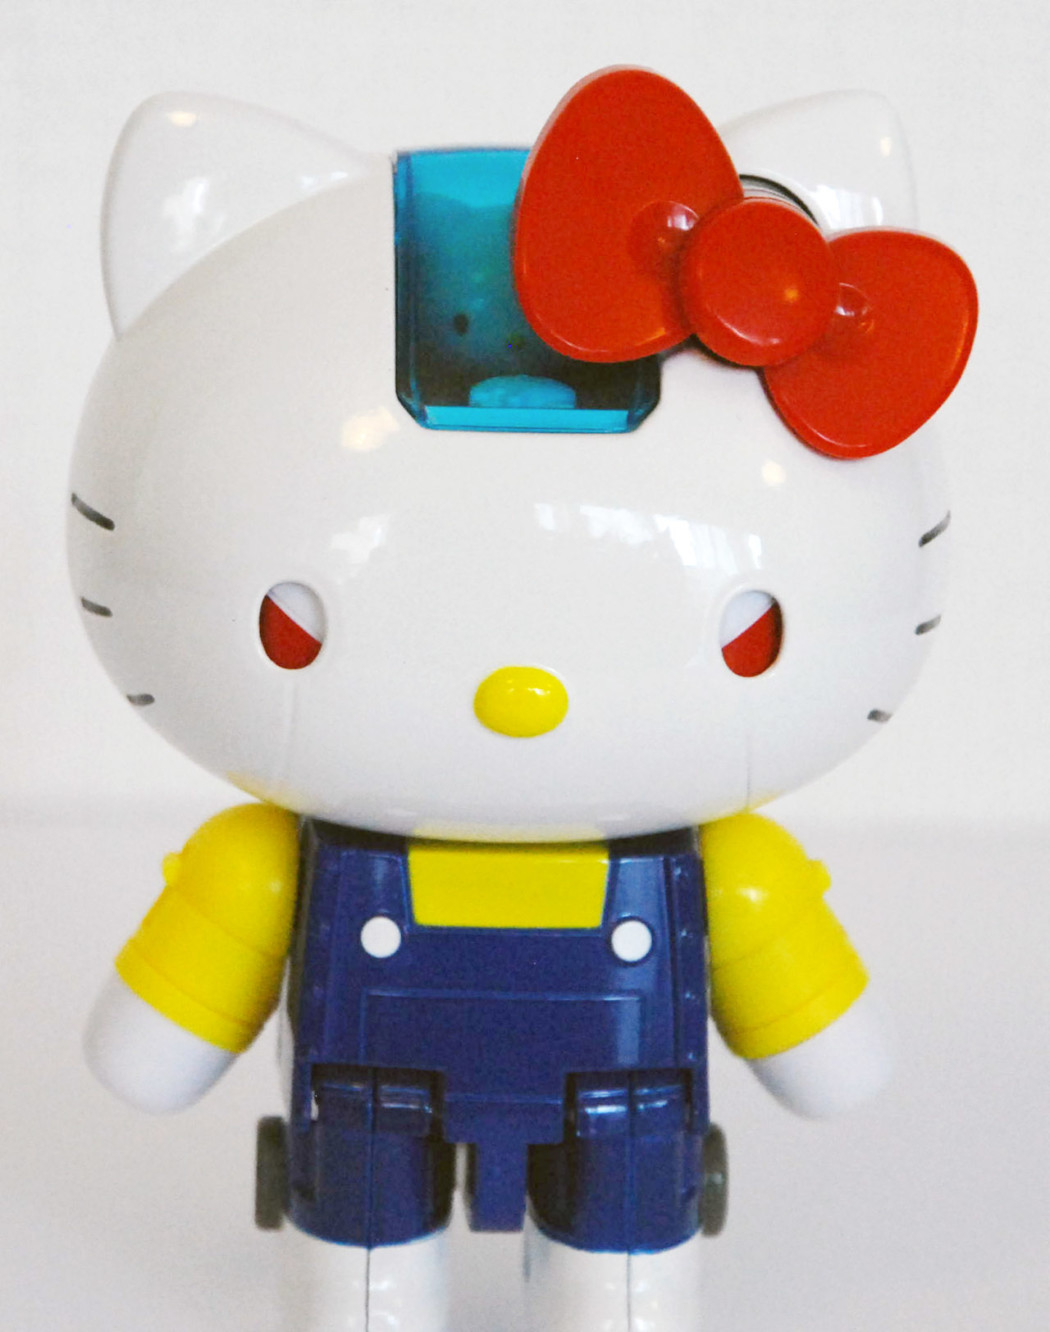 Chogokin Hello Kitty by Bandai (Part 2: Review)